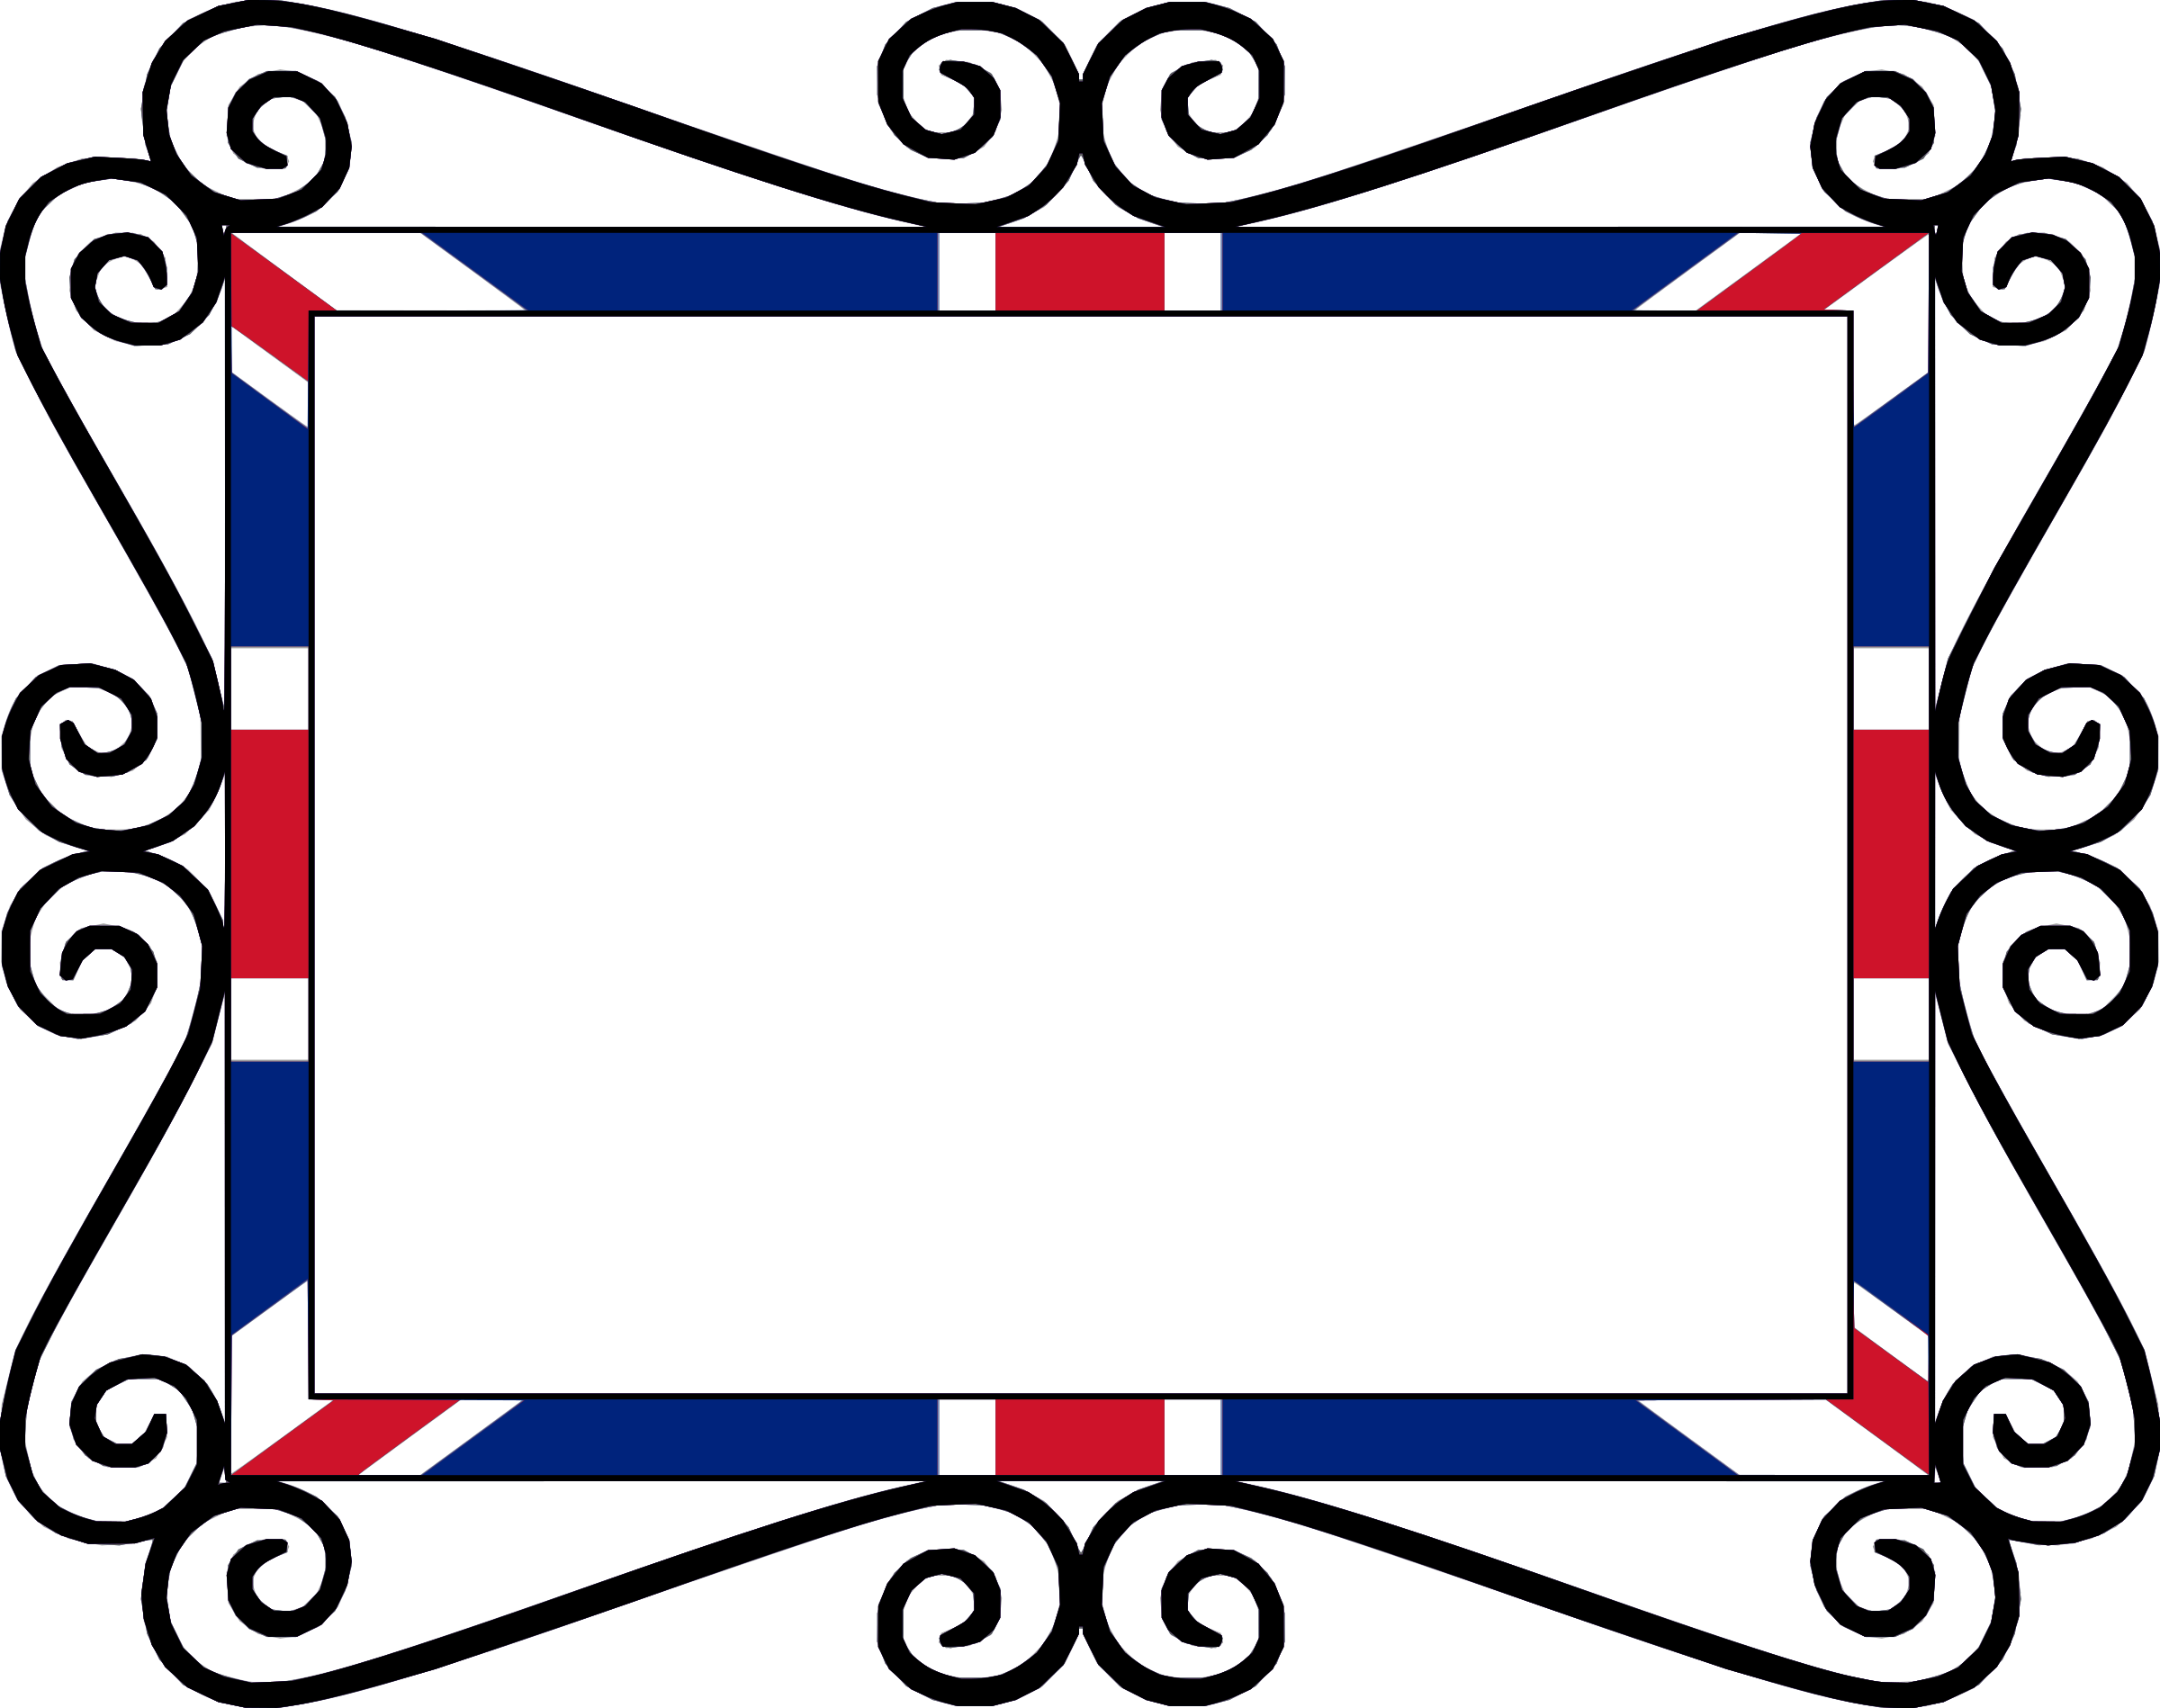 Picture clipart frame. Uk union flag big